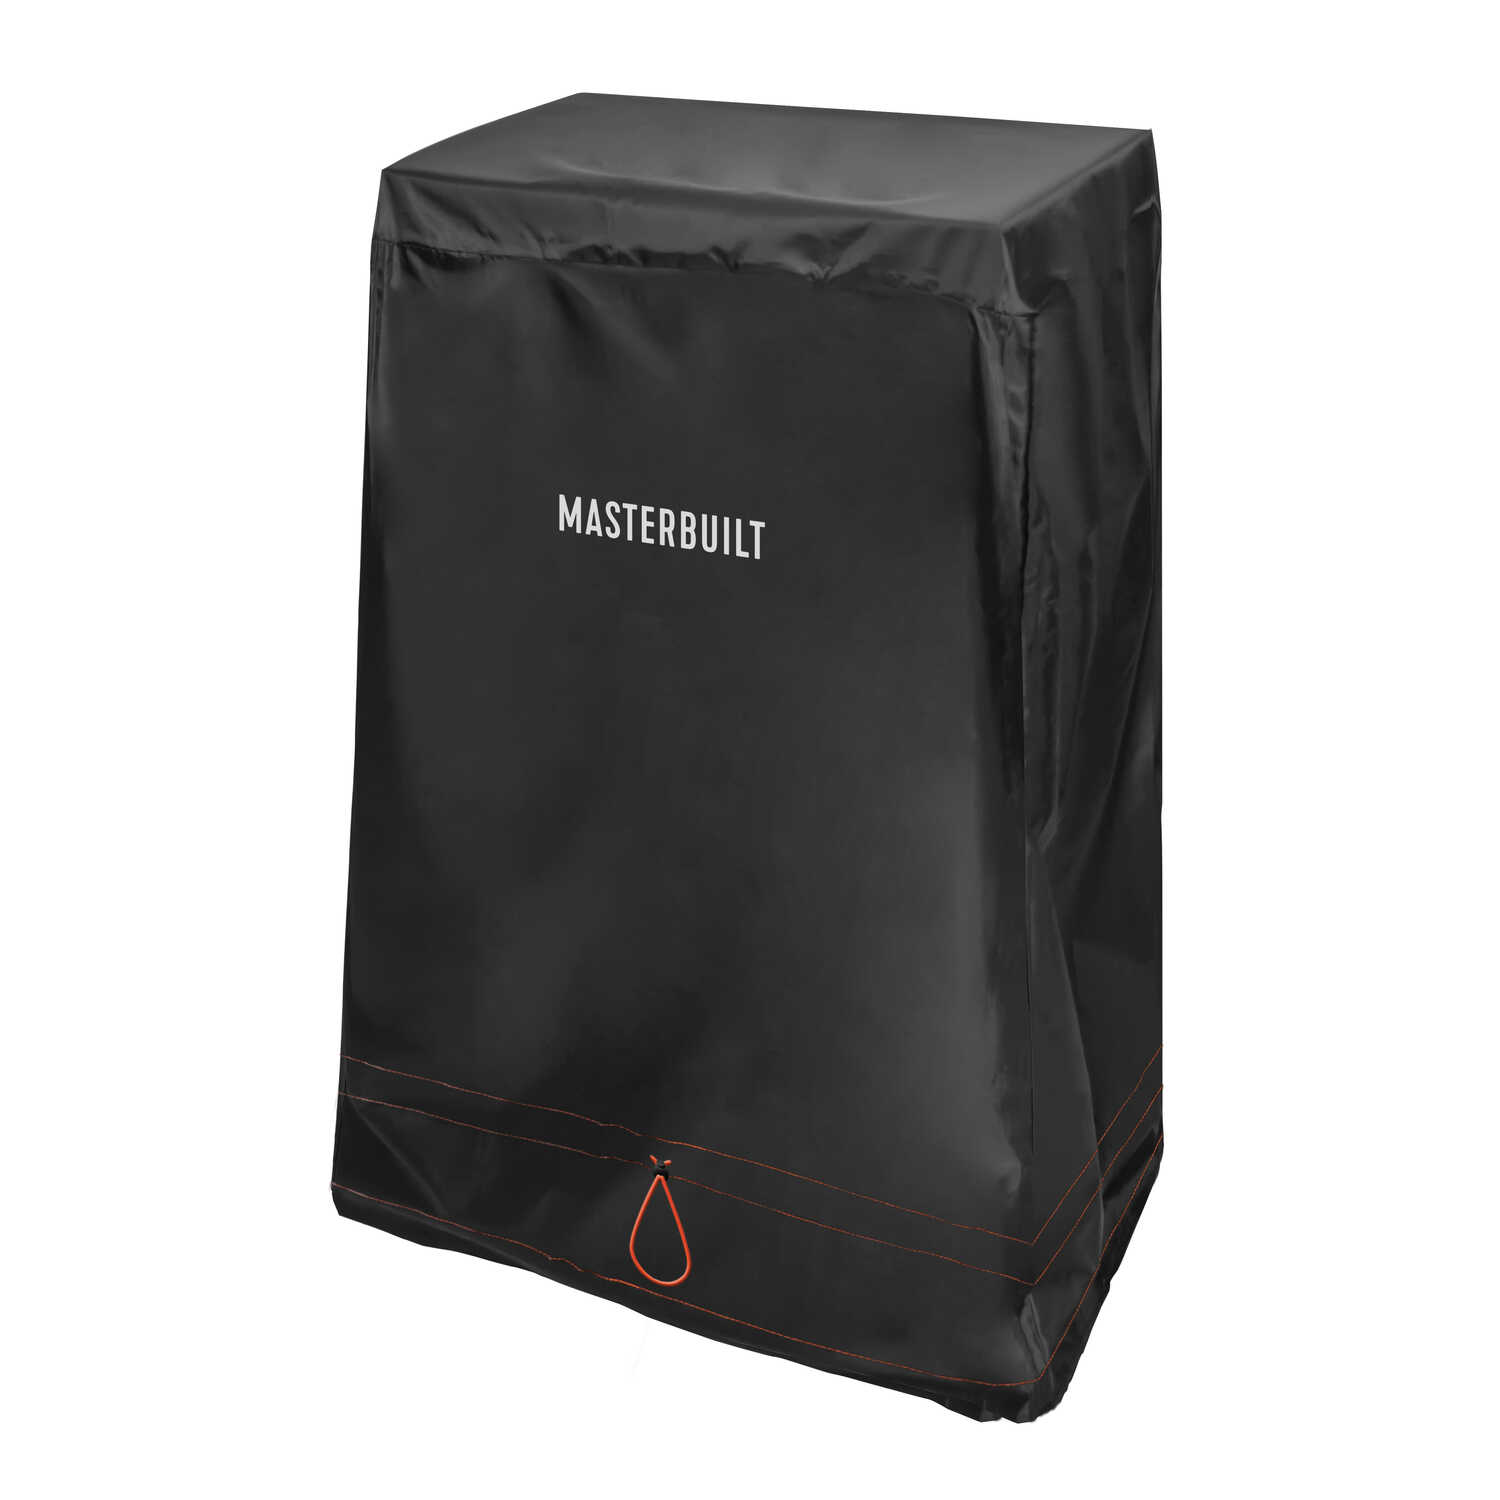 Masterbuilt  Black  Smoker Cover  27.48 in. W x 20.98 in. D x 38.5 in. H For 40 in. Gas Smokers